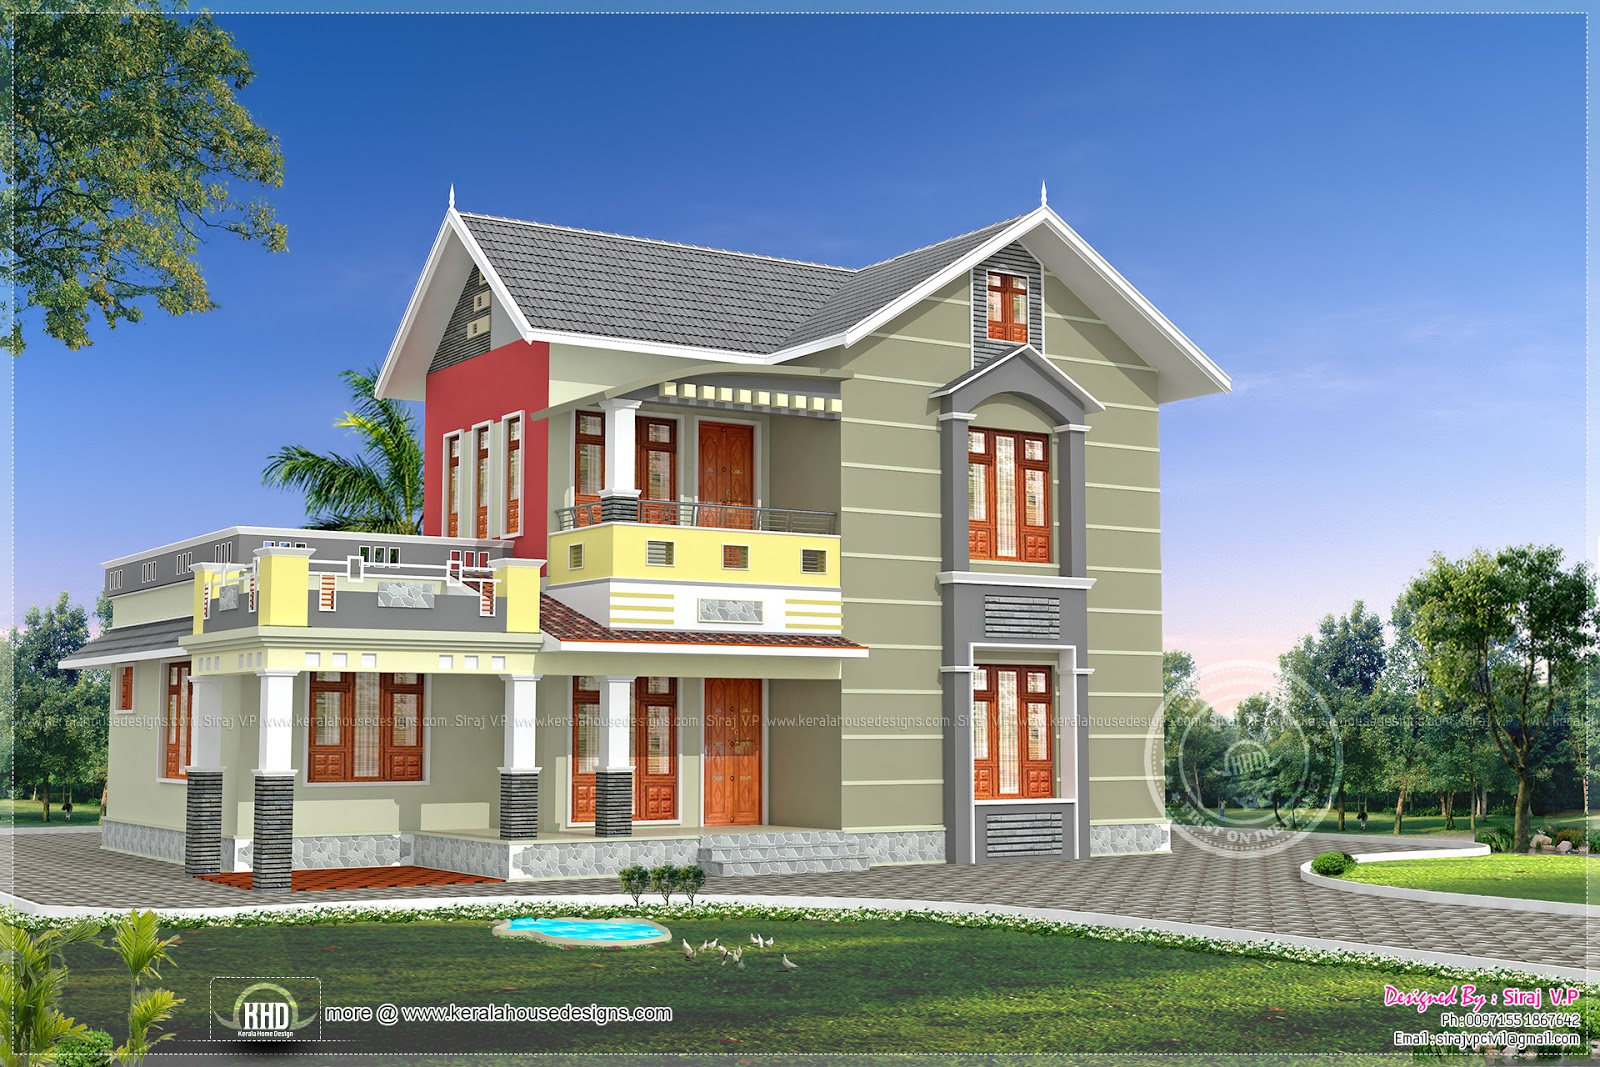 Dream home design Build my dream house